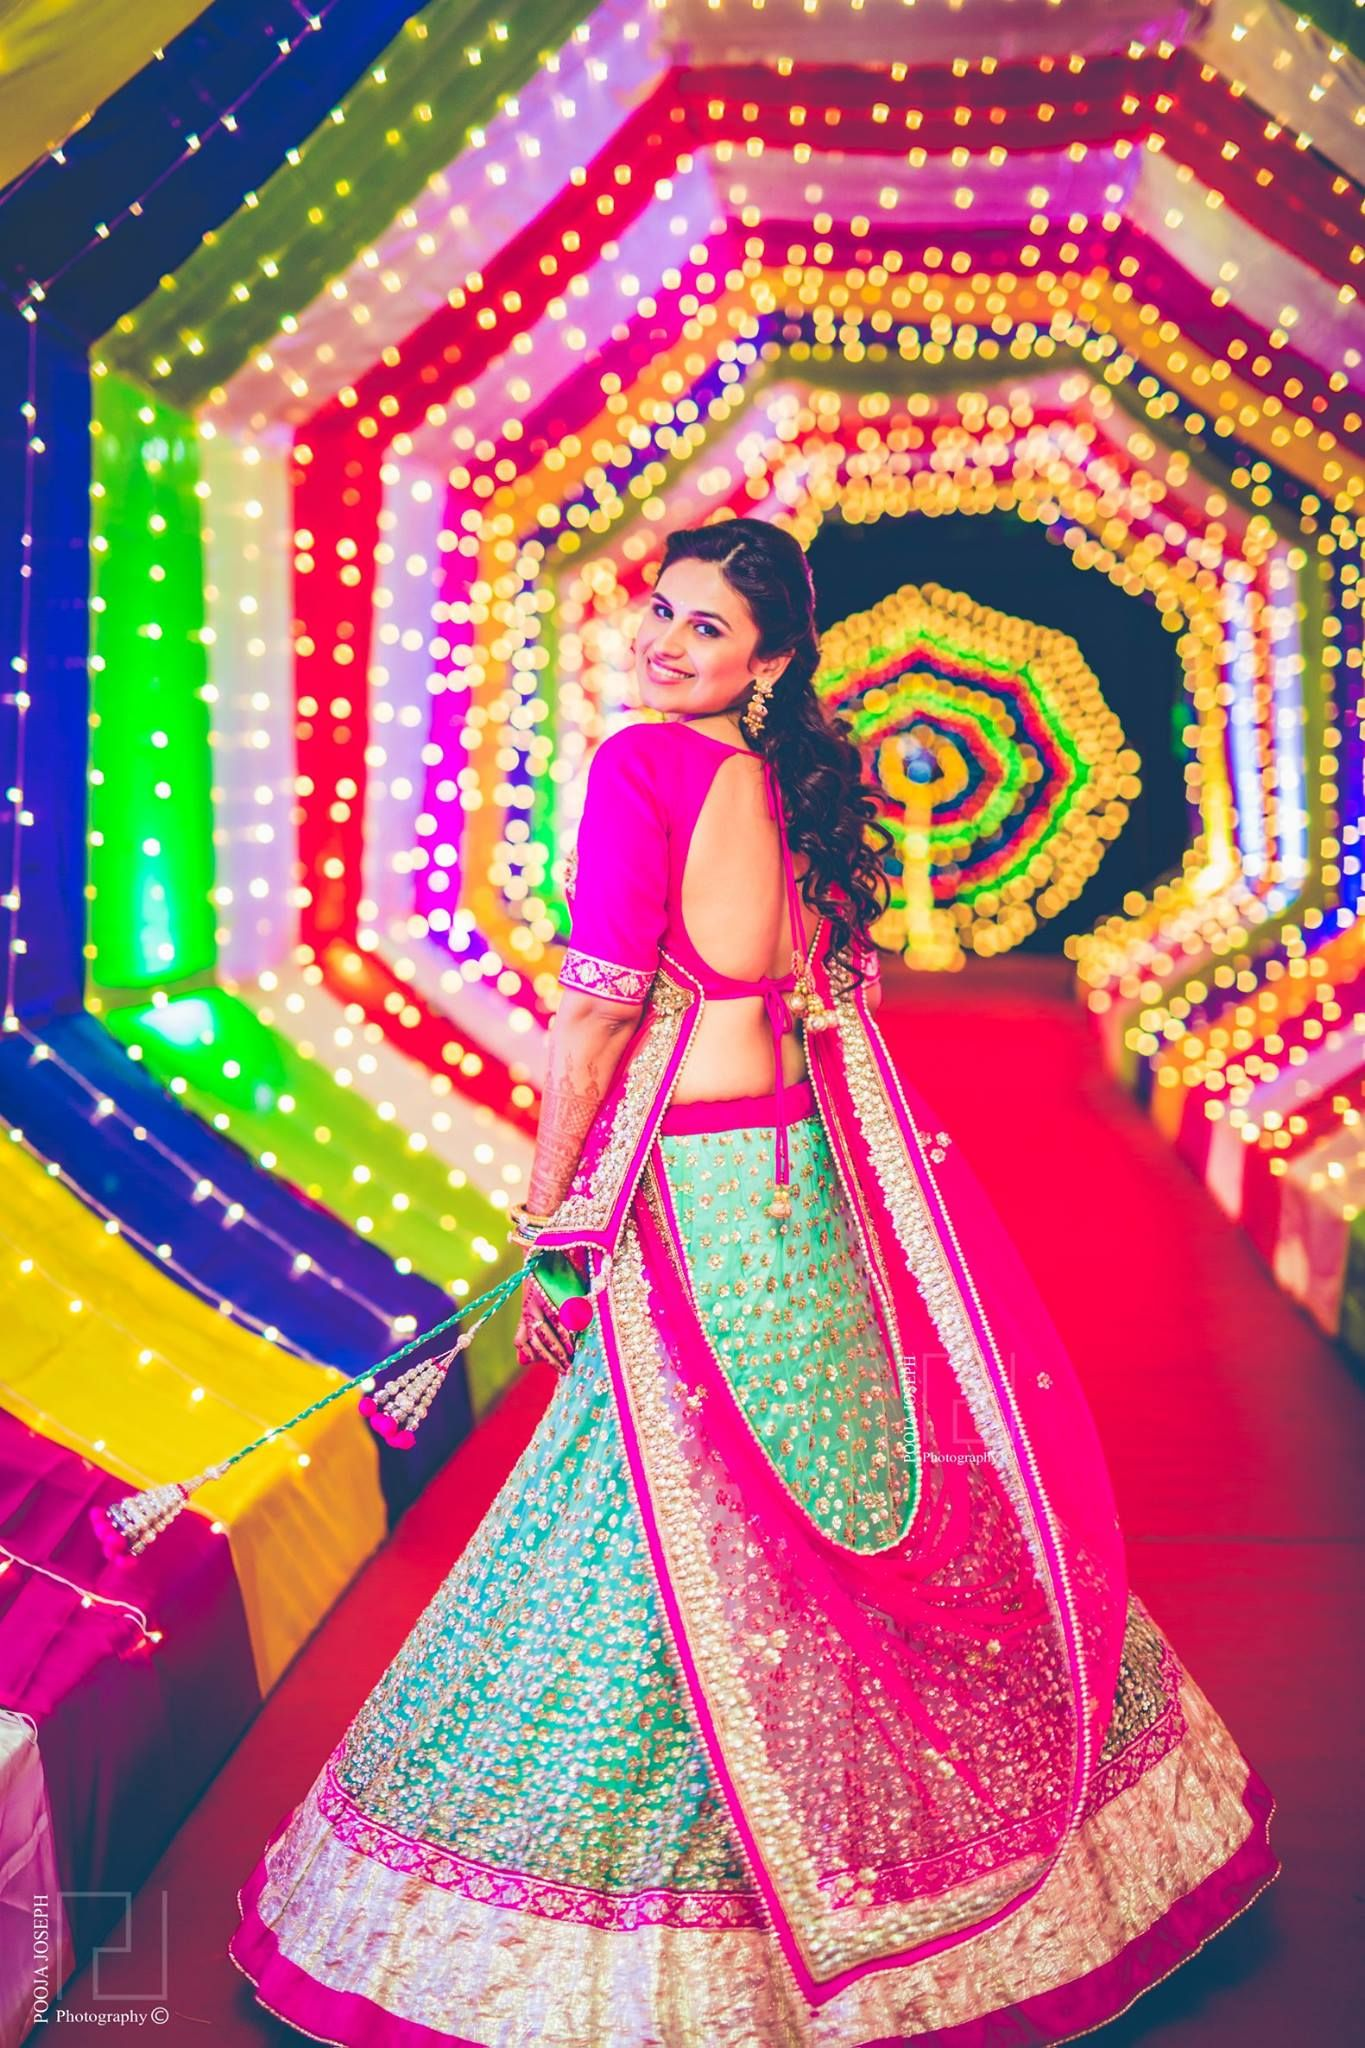 Wedding Decor | Bollywood Indian Party | Pinterest | Flores de papel ...